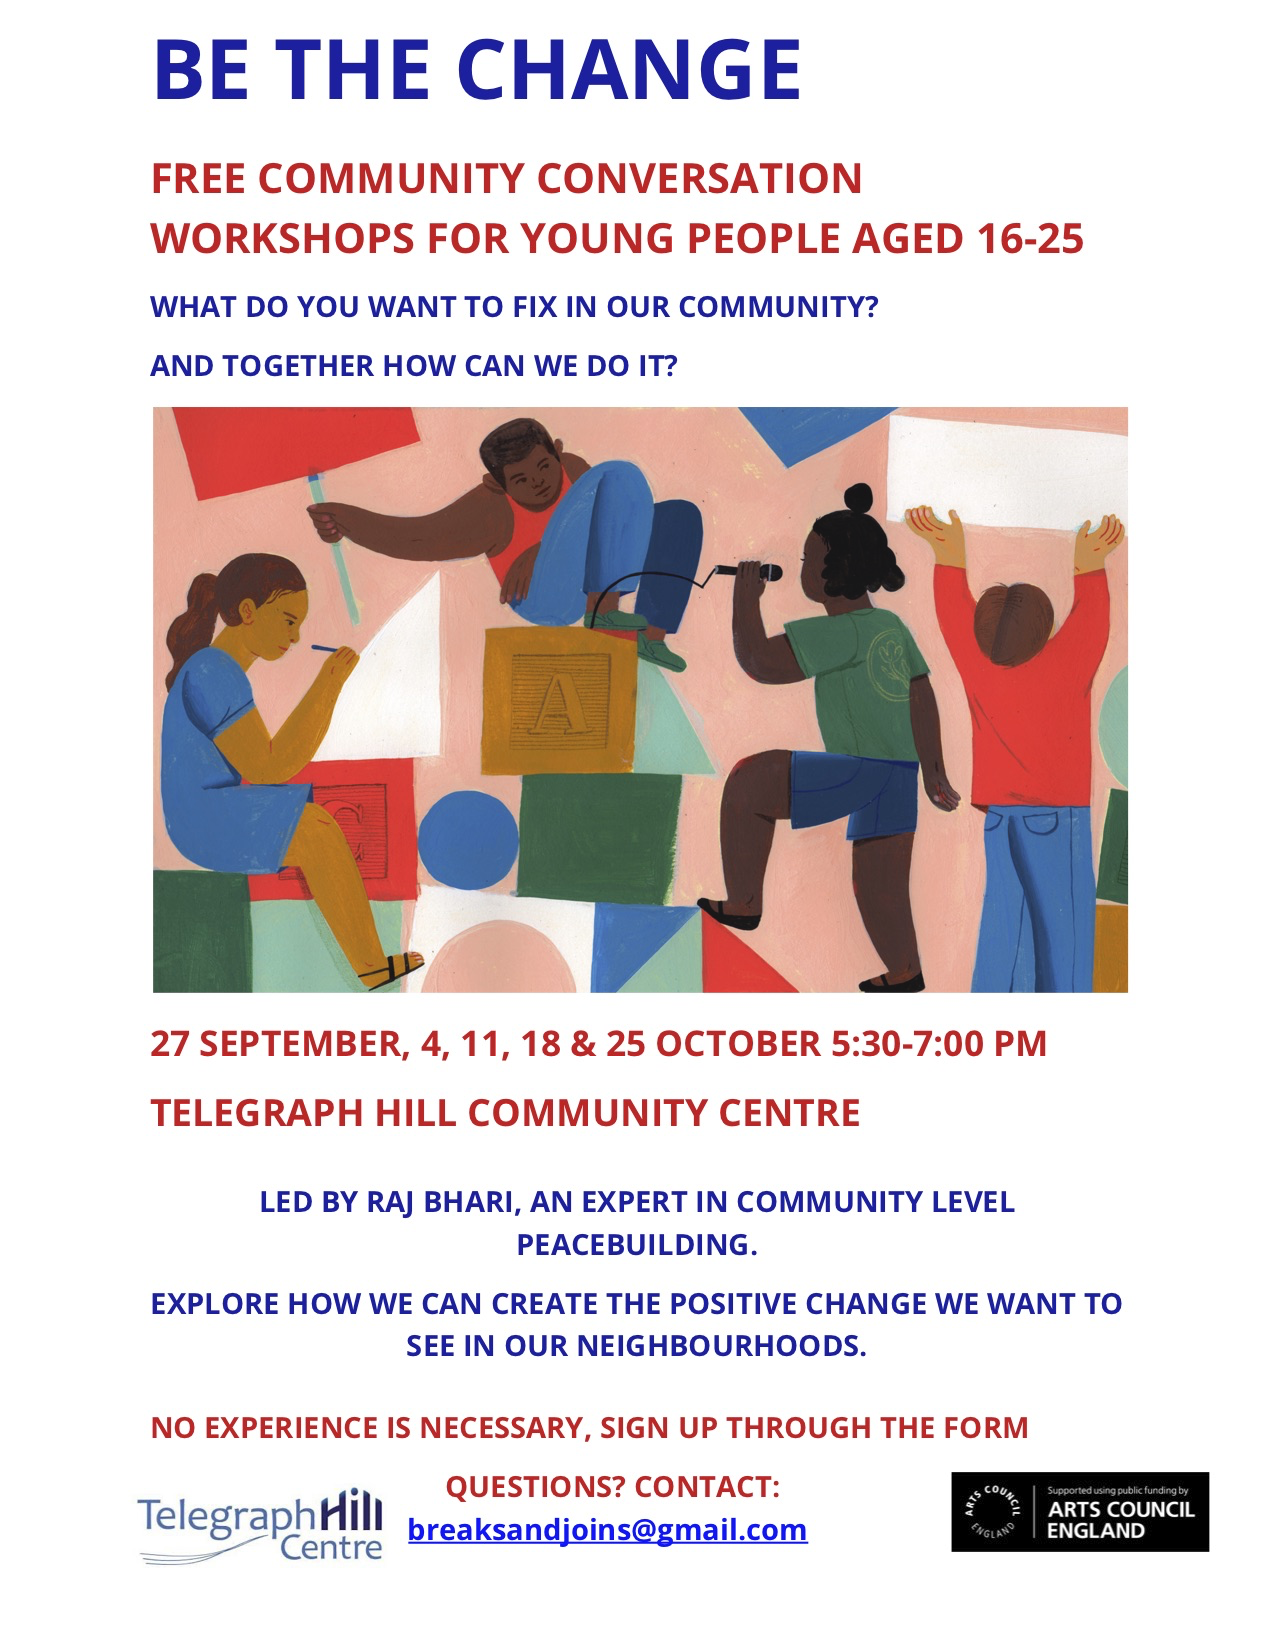 Be The Change – Free Community Conversation Workshops for Young People